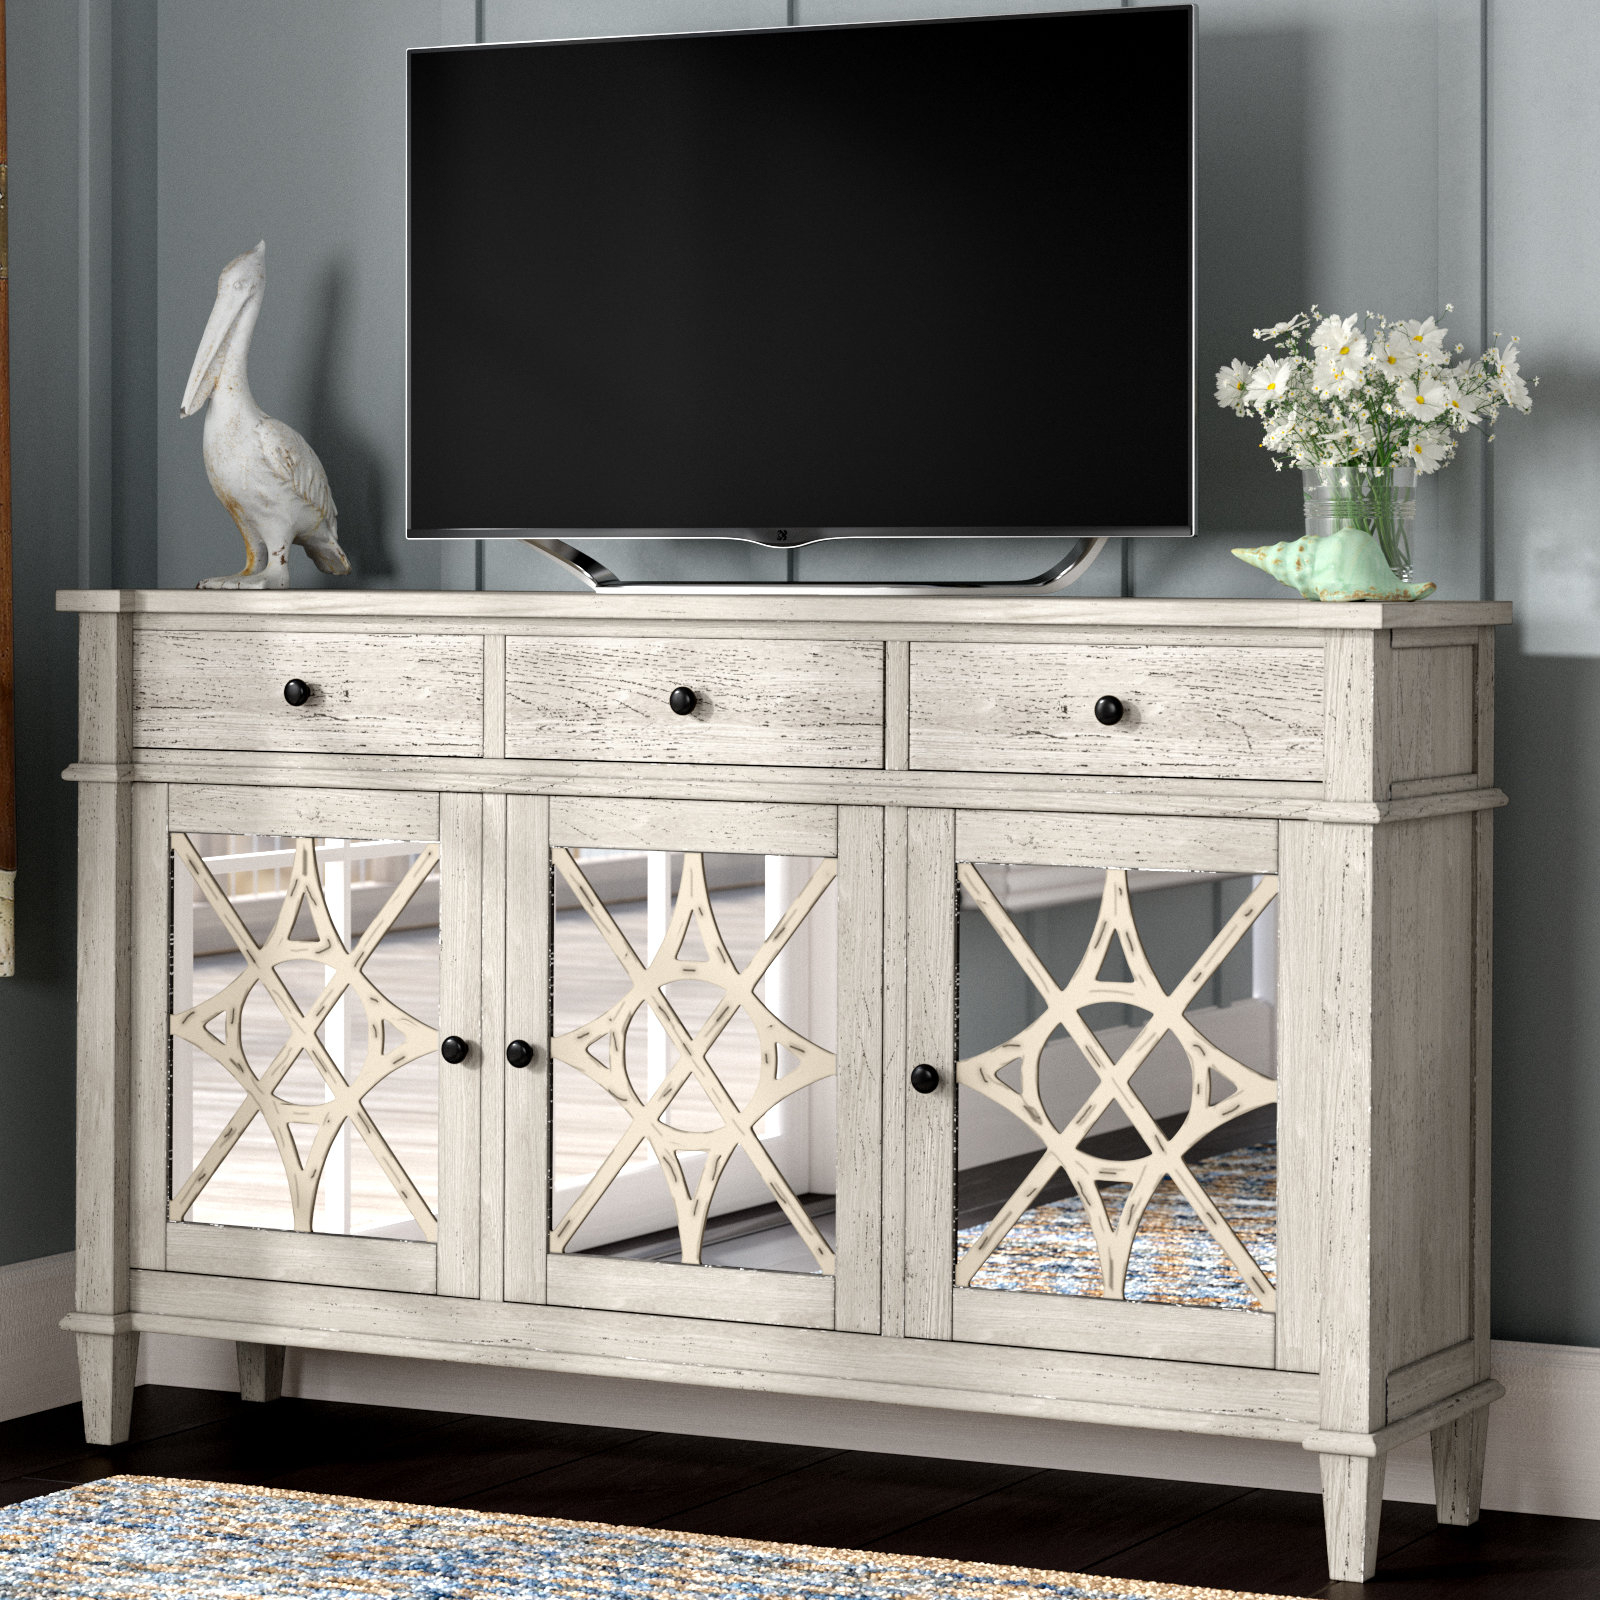 """Parmelee Tv Stand For Tvs Up To 65"""" Intended For Recent Parmelee Tv Stands For Tvs Up To 65"""" (#17 of 20)"""